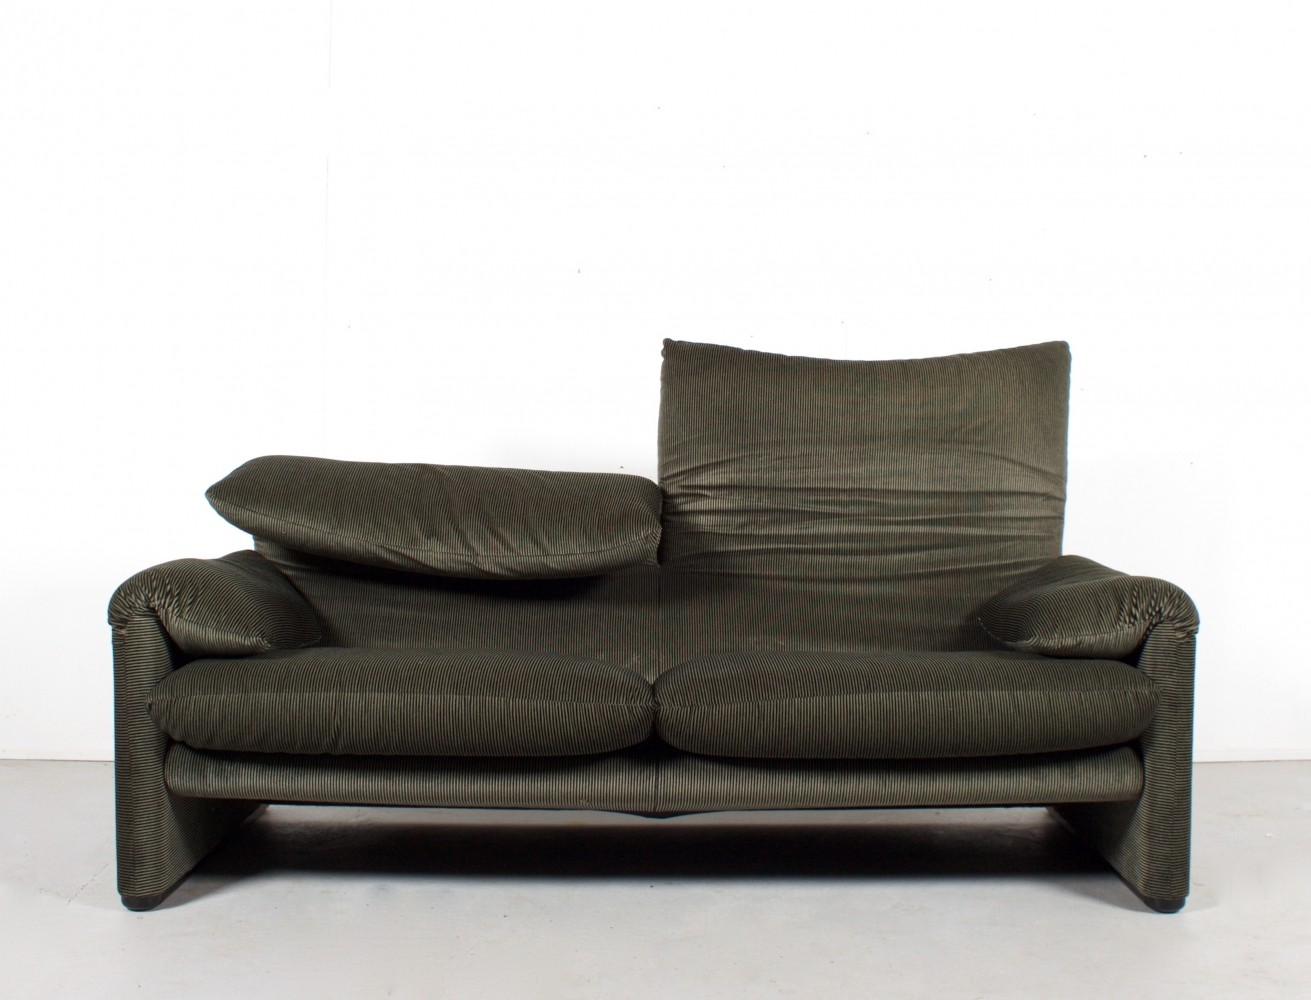 2 Maralunga sofas from the seventies by Vico Magistretti for Cassina